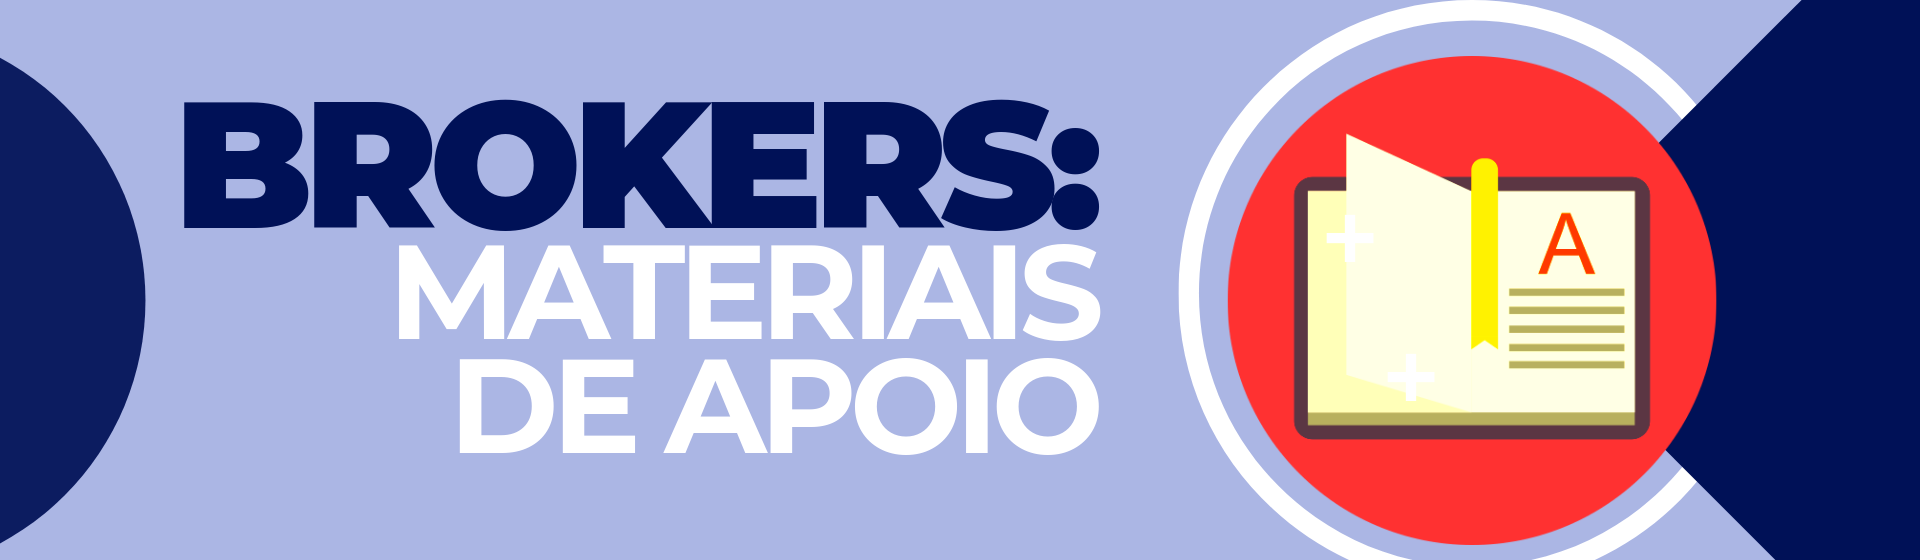 Brokers%2bapoio